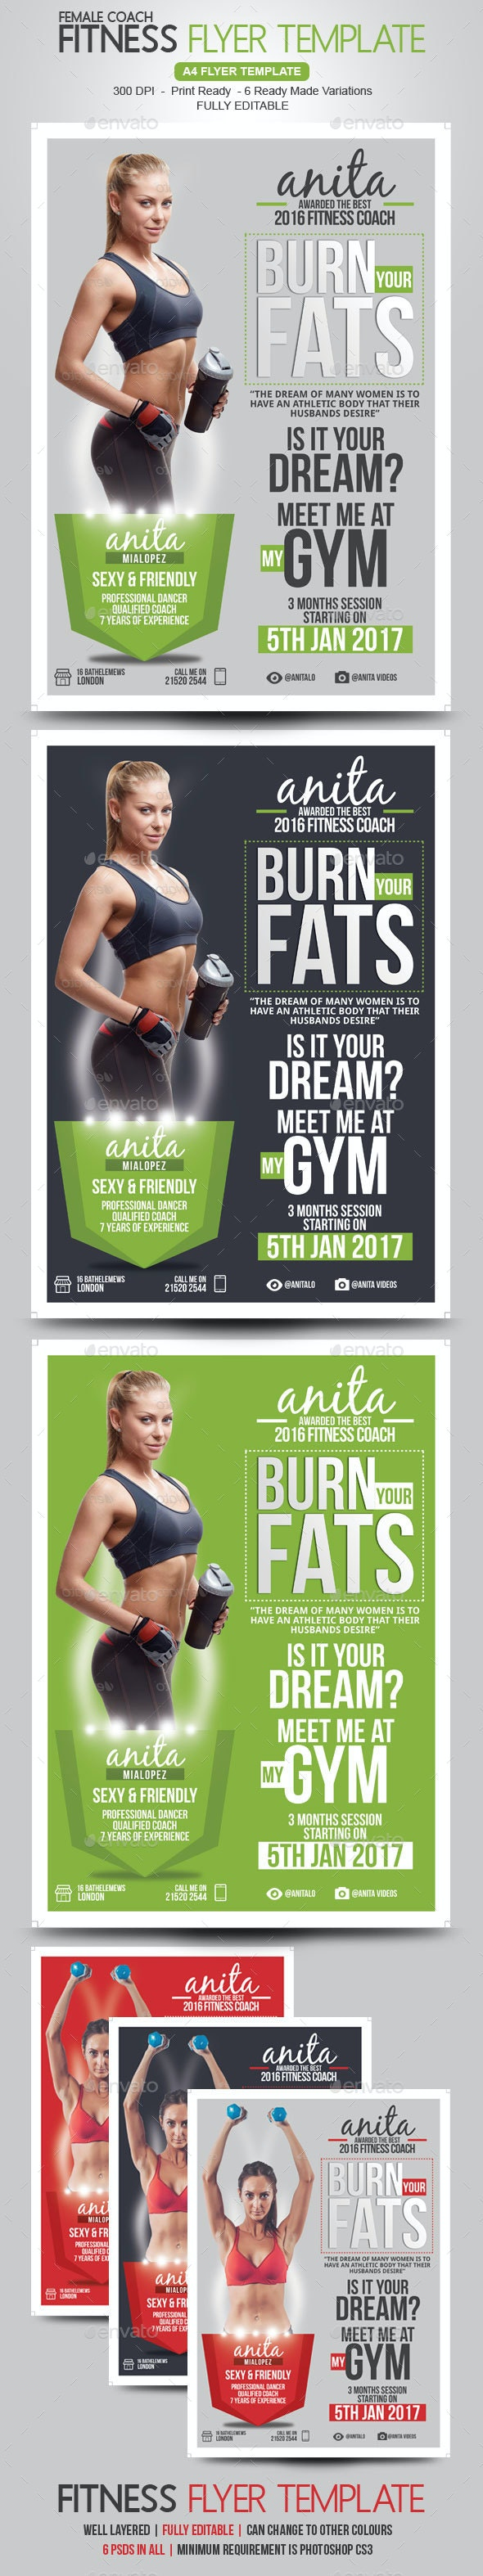 Fitness Coach Flyer Template - Corporate Flyers